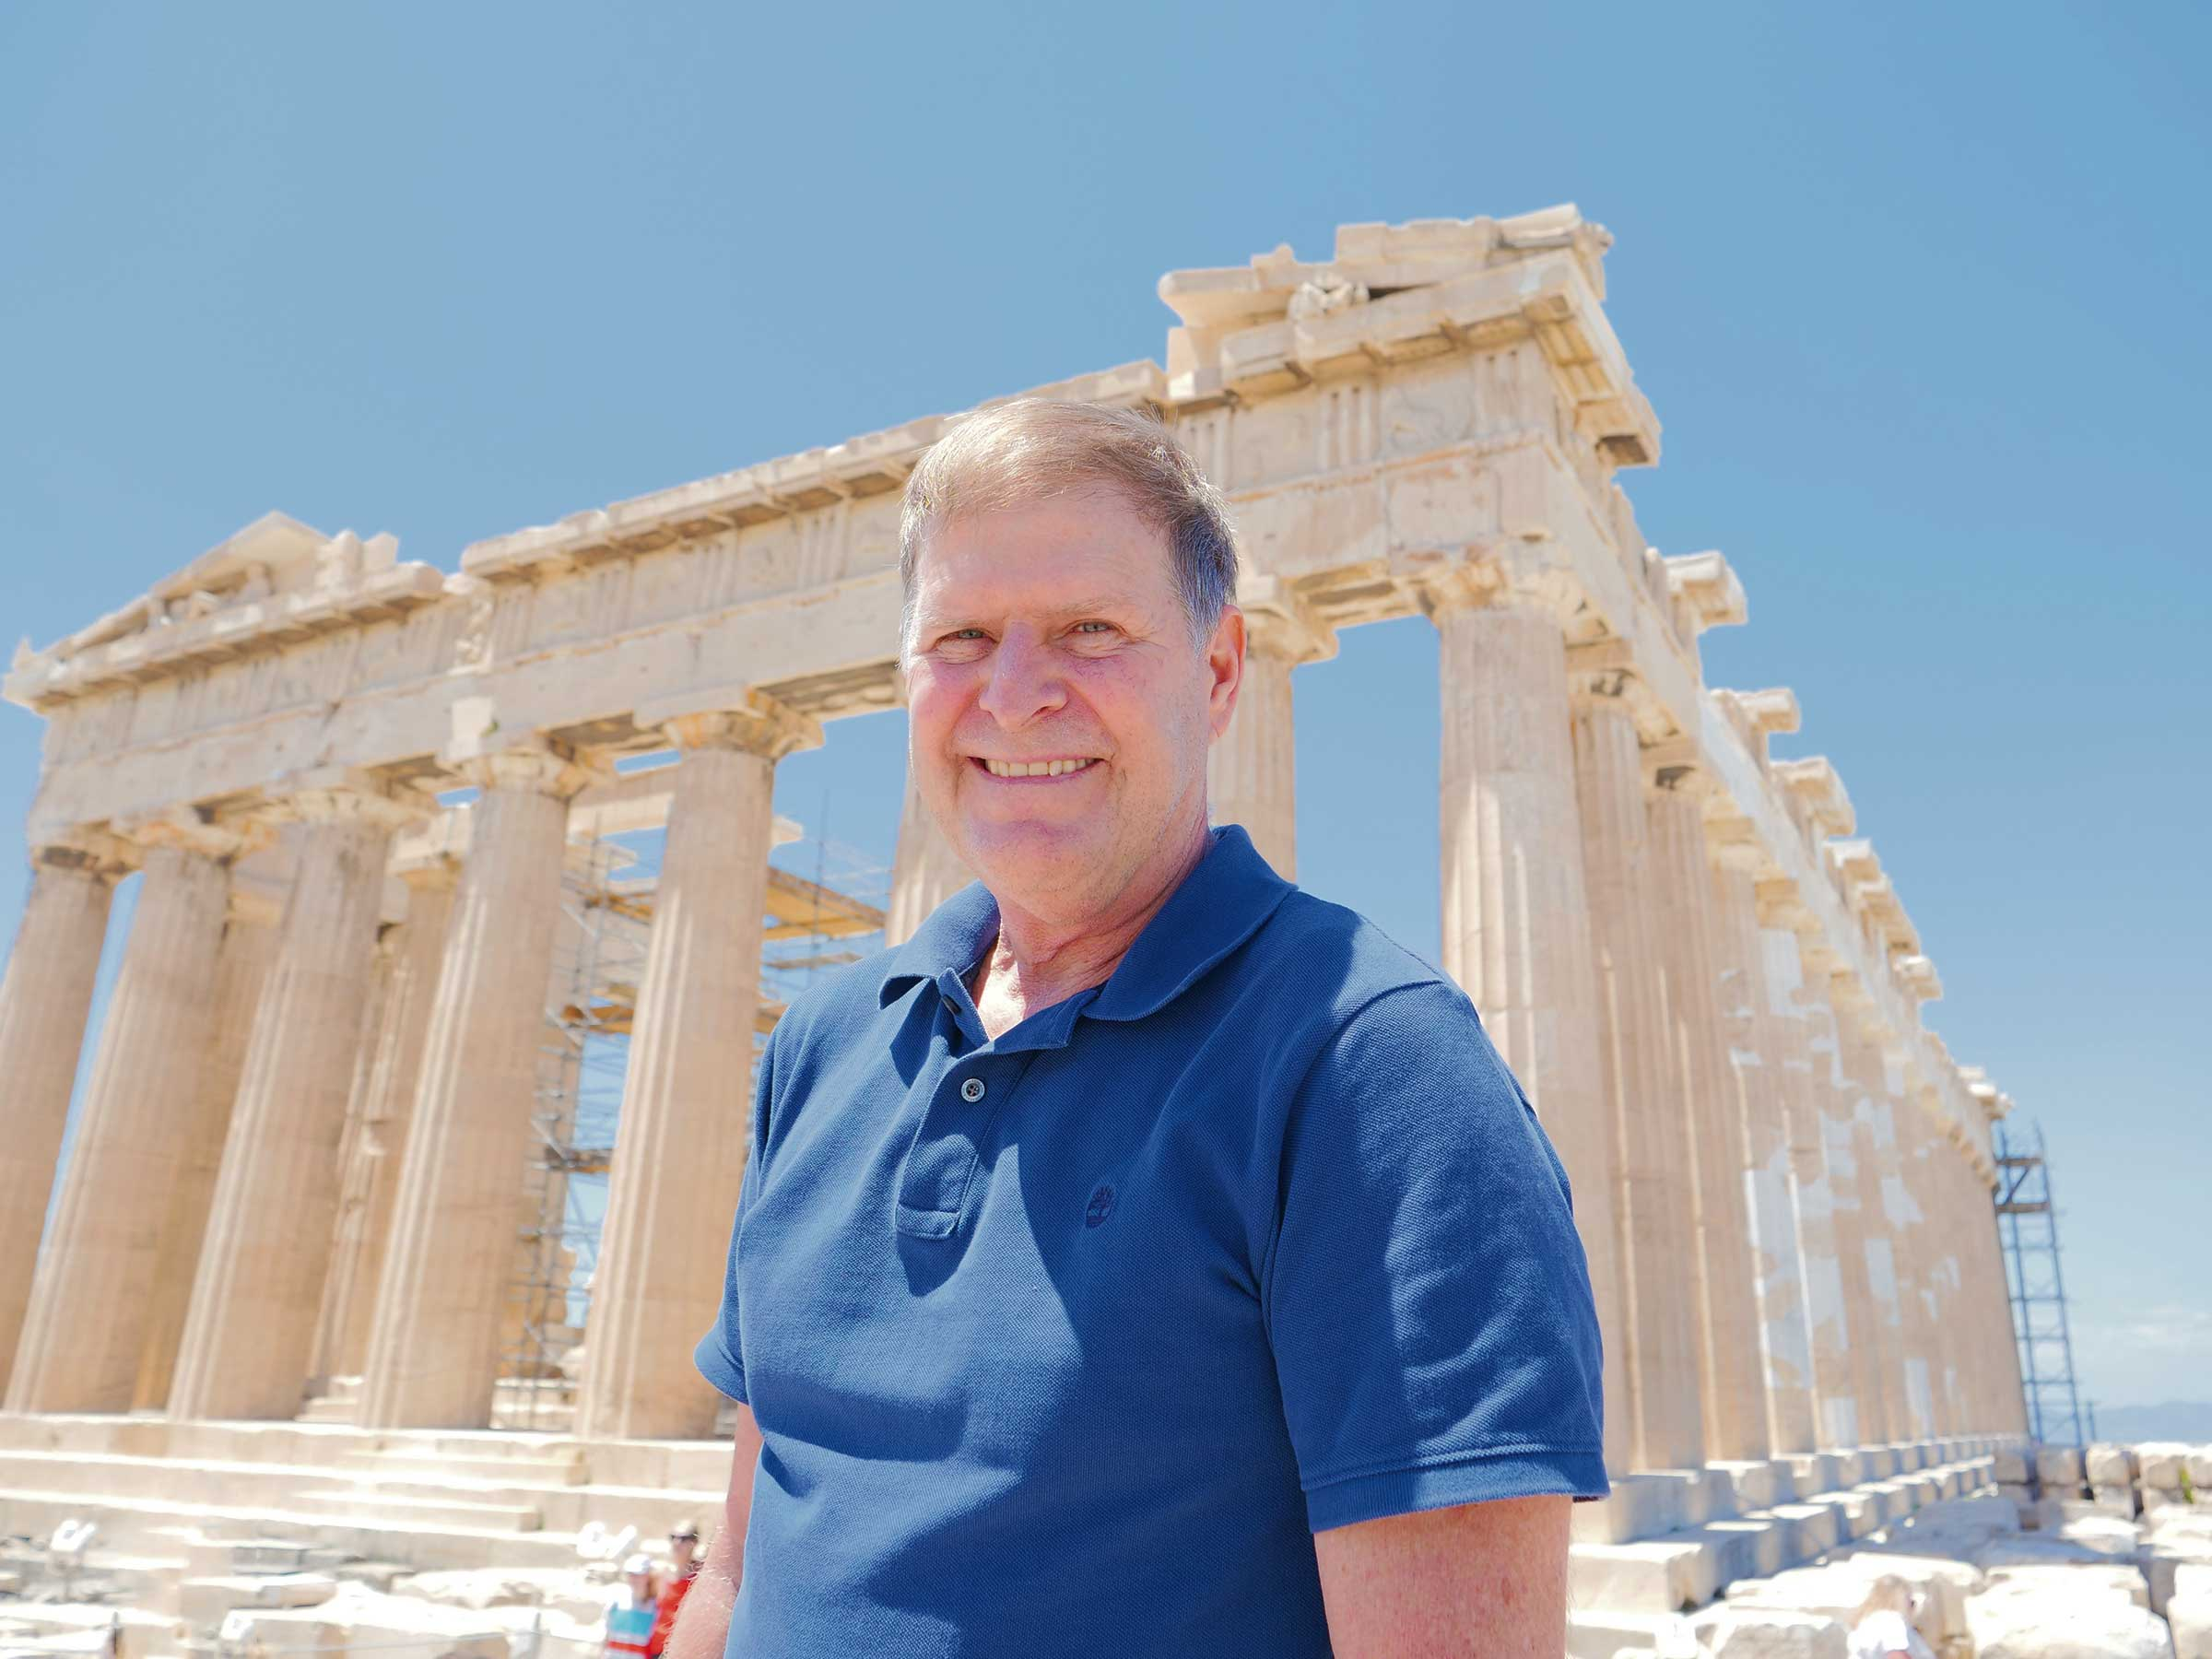 Parthenon | Acropolis | Athens Greece | Dr Steven Andrew Martin | Archaeological Research